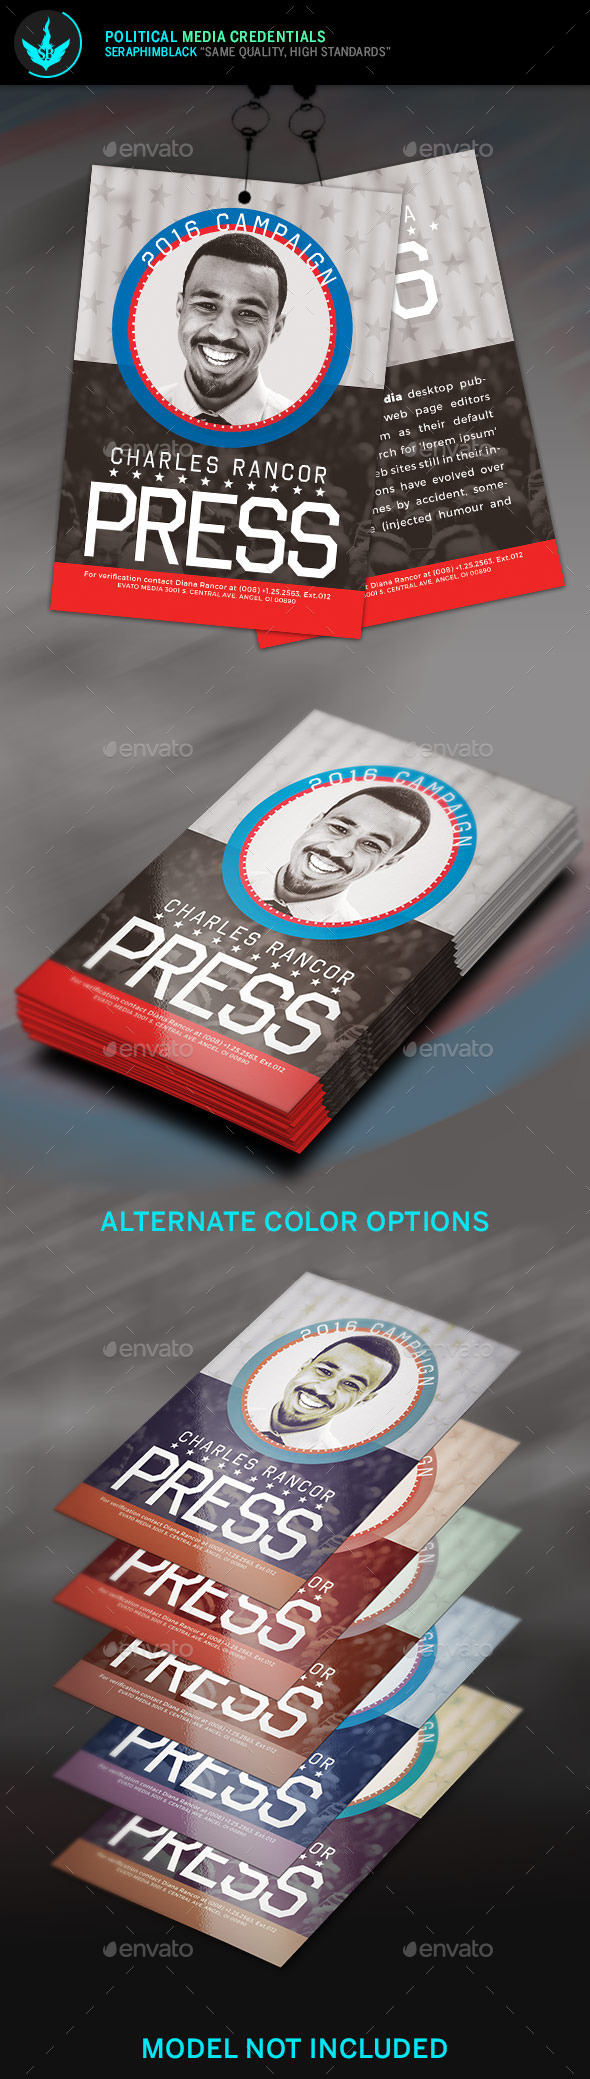 Political media credentials template by seraphimblack for Media pass template